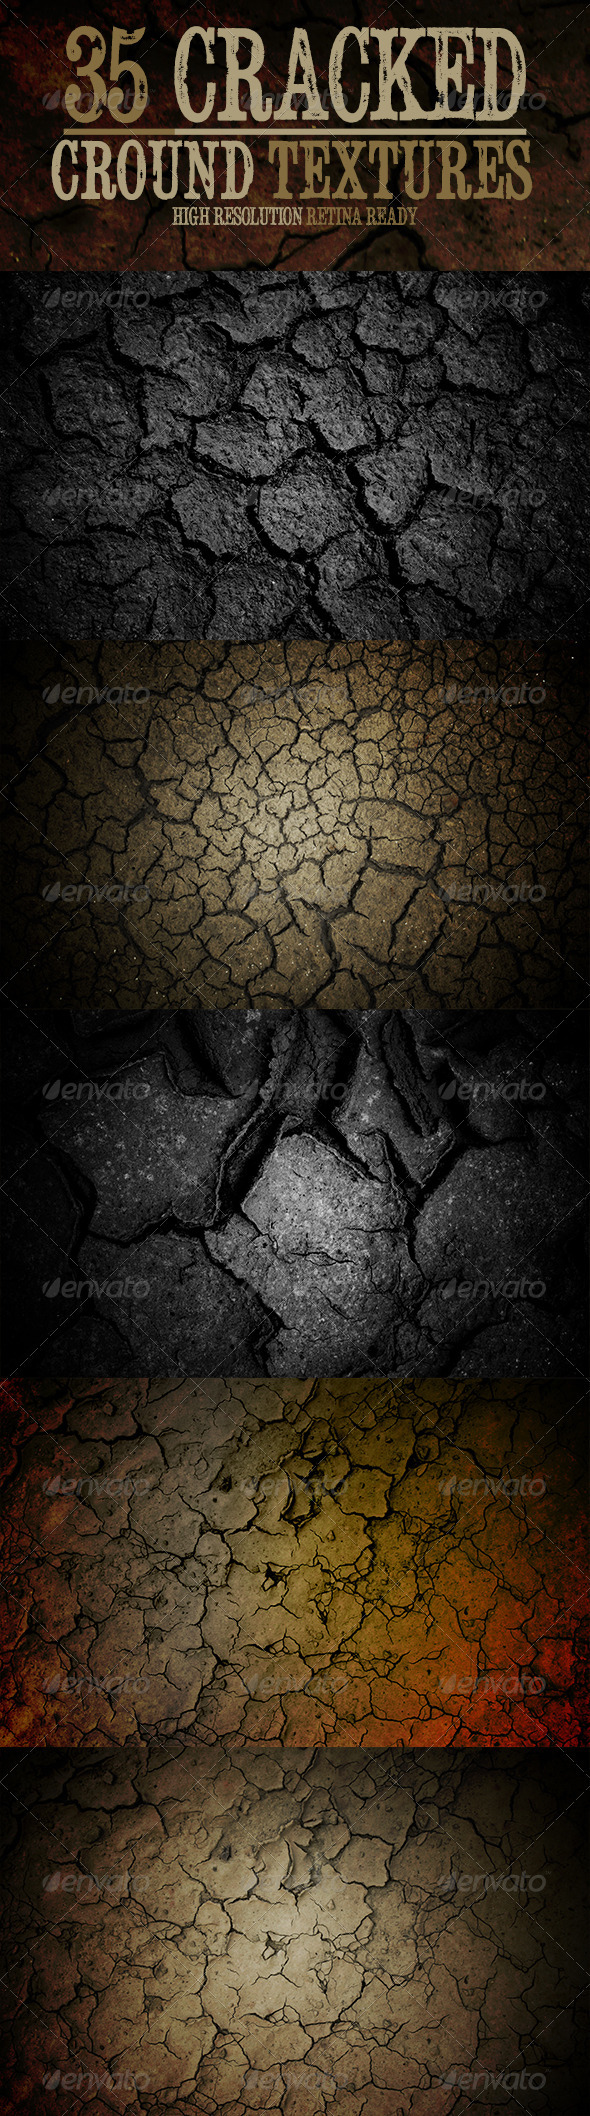 Cracked Ground Textures - Industrial / Grunge Textures